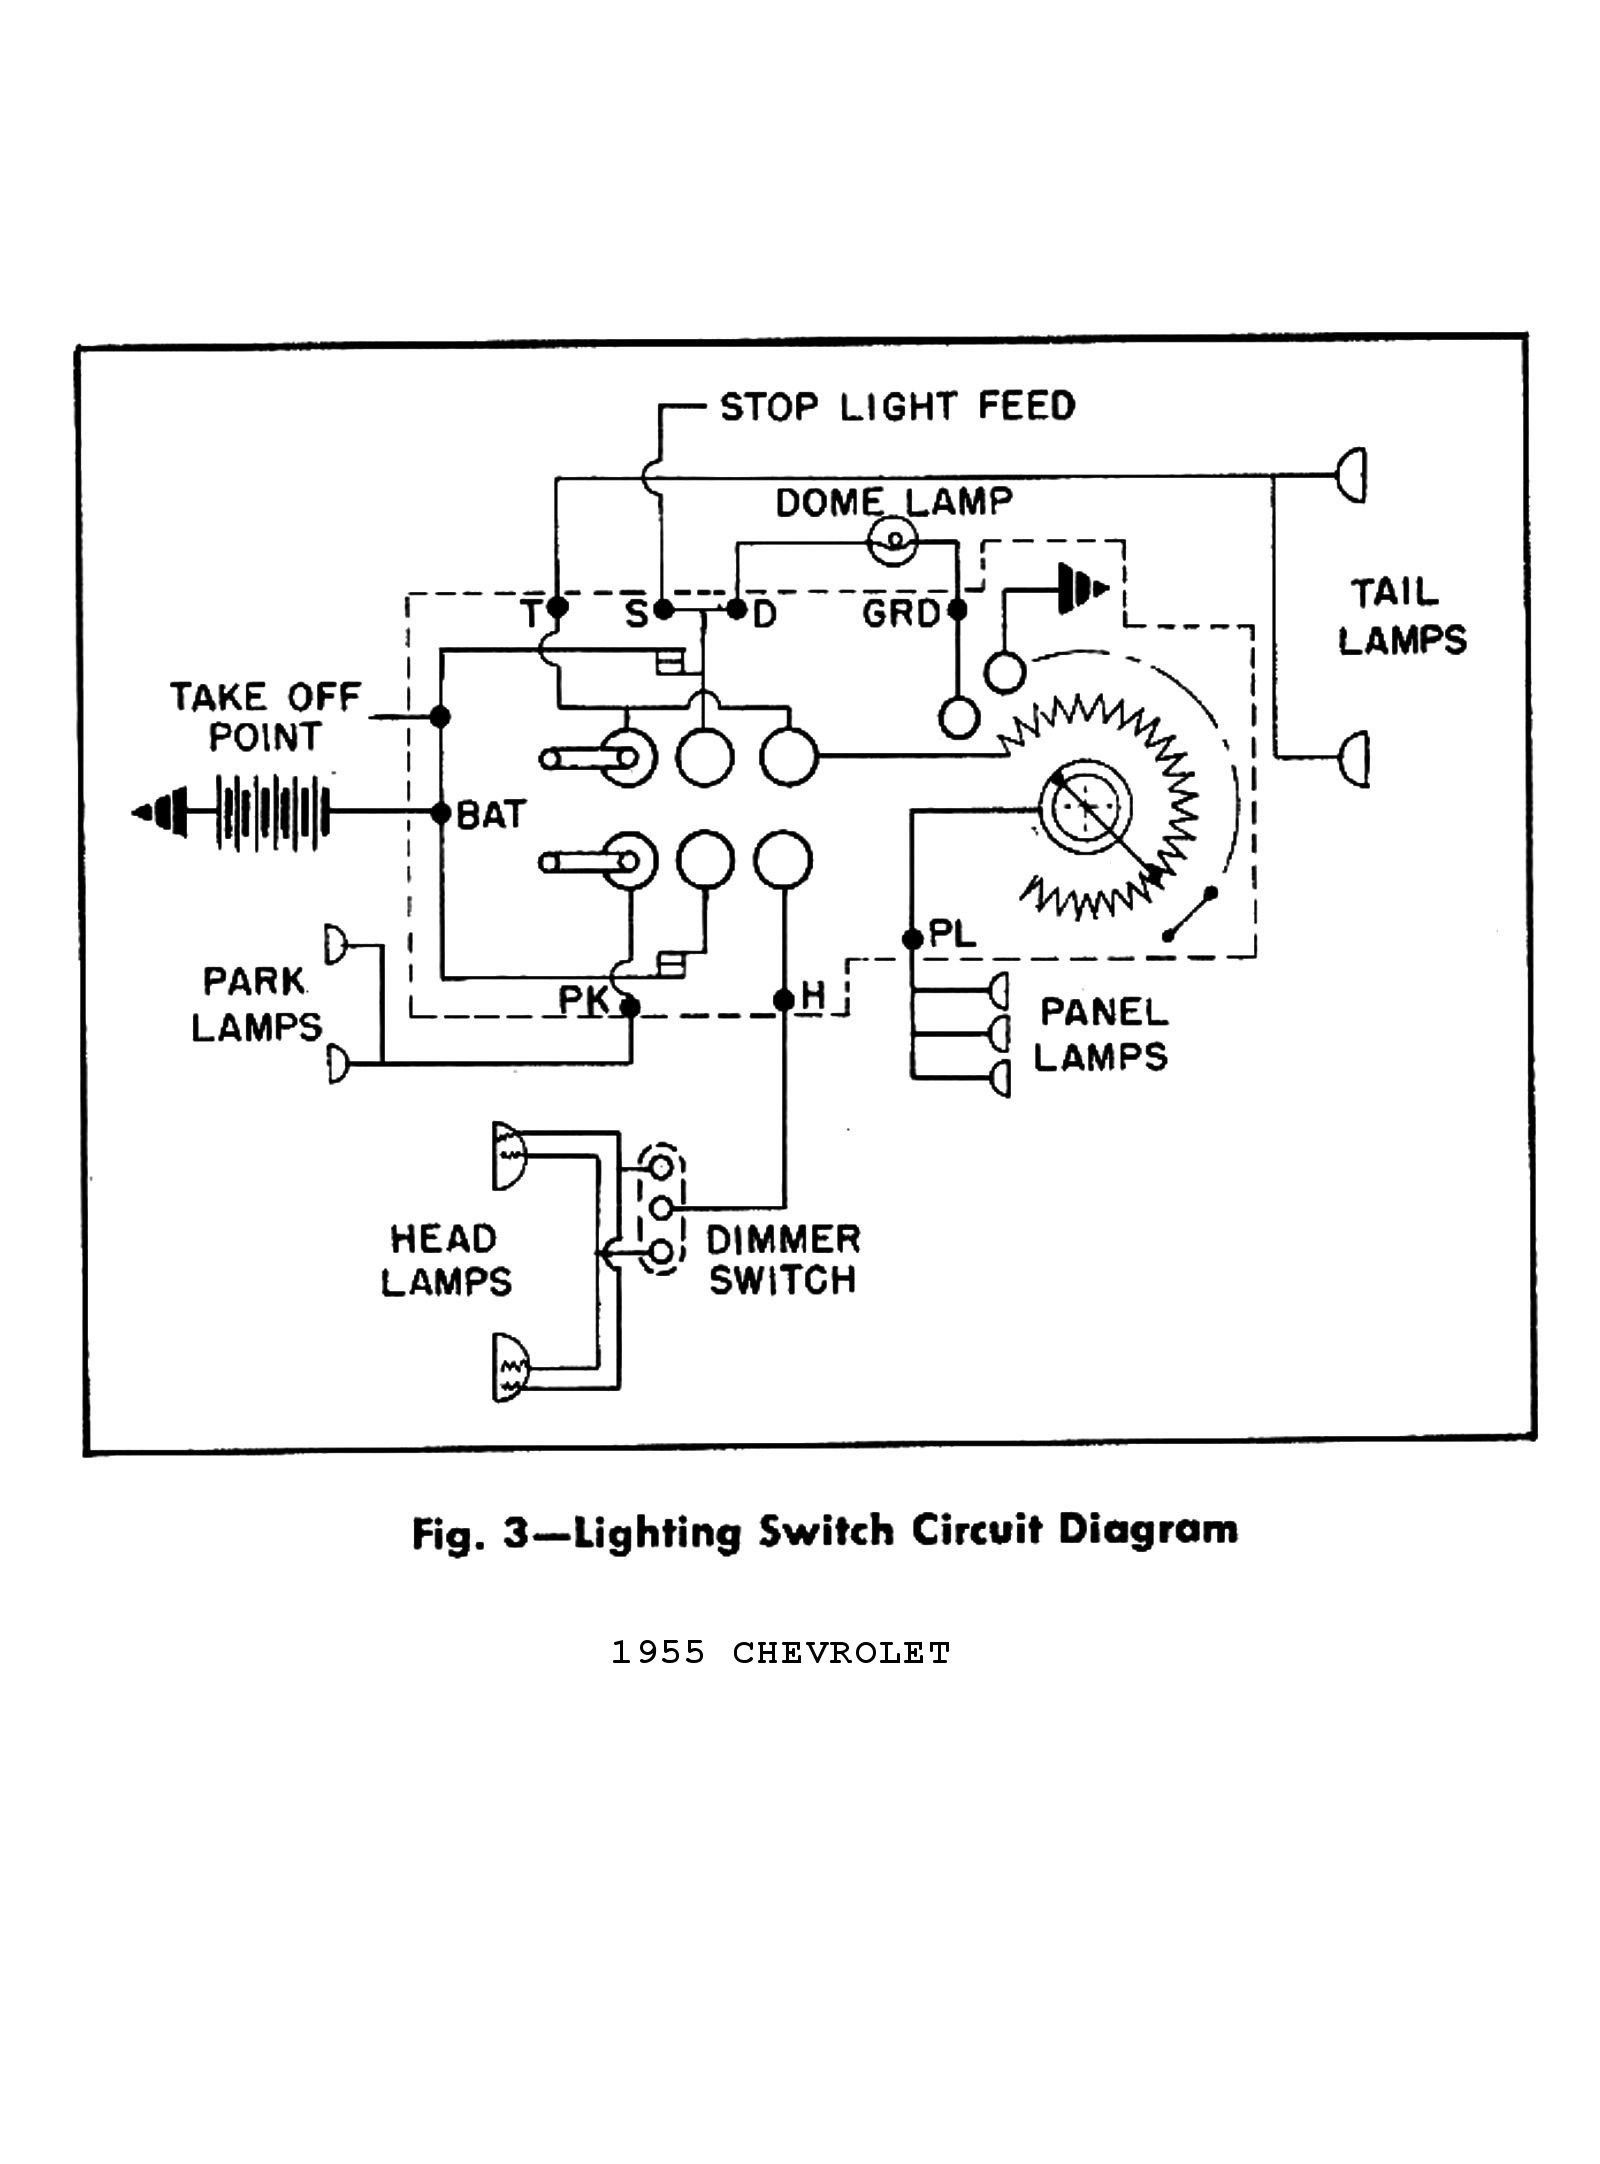 New Wiring Diagram 3 Way Dimmer Switch Light Switch Wiring Electrical Switch Wiring Diagram